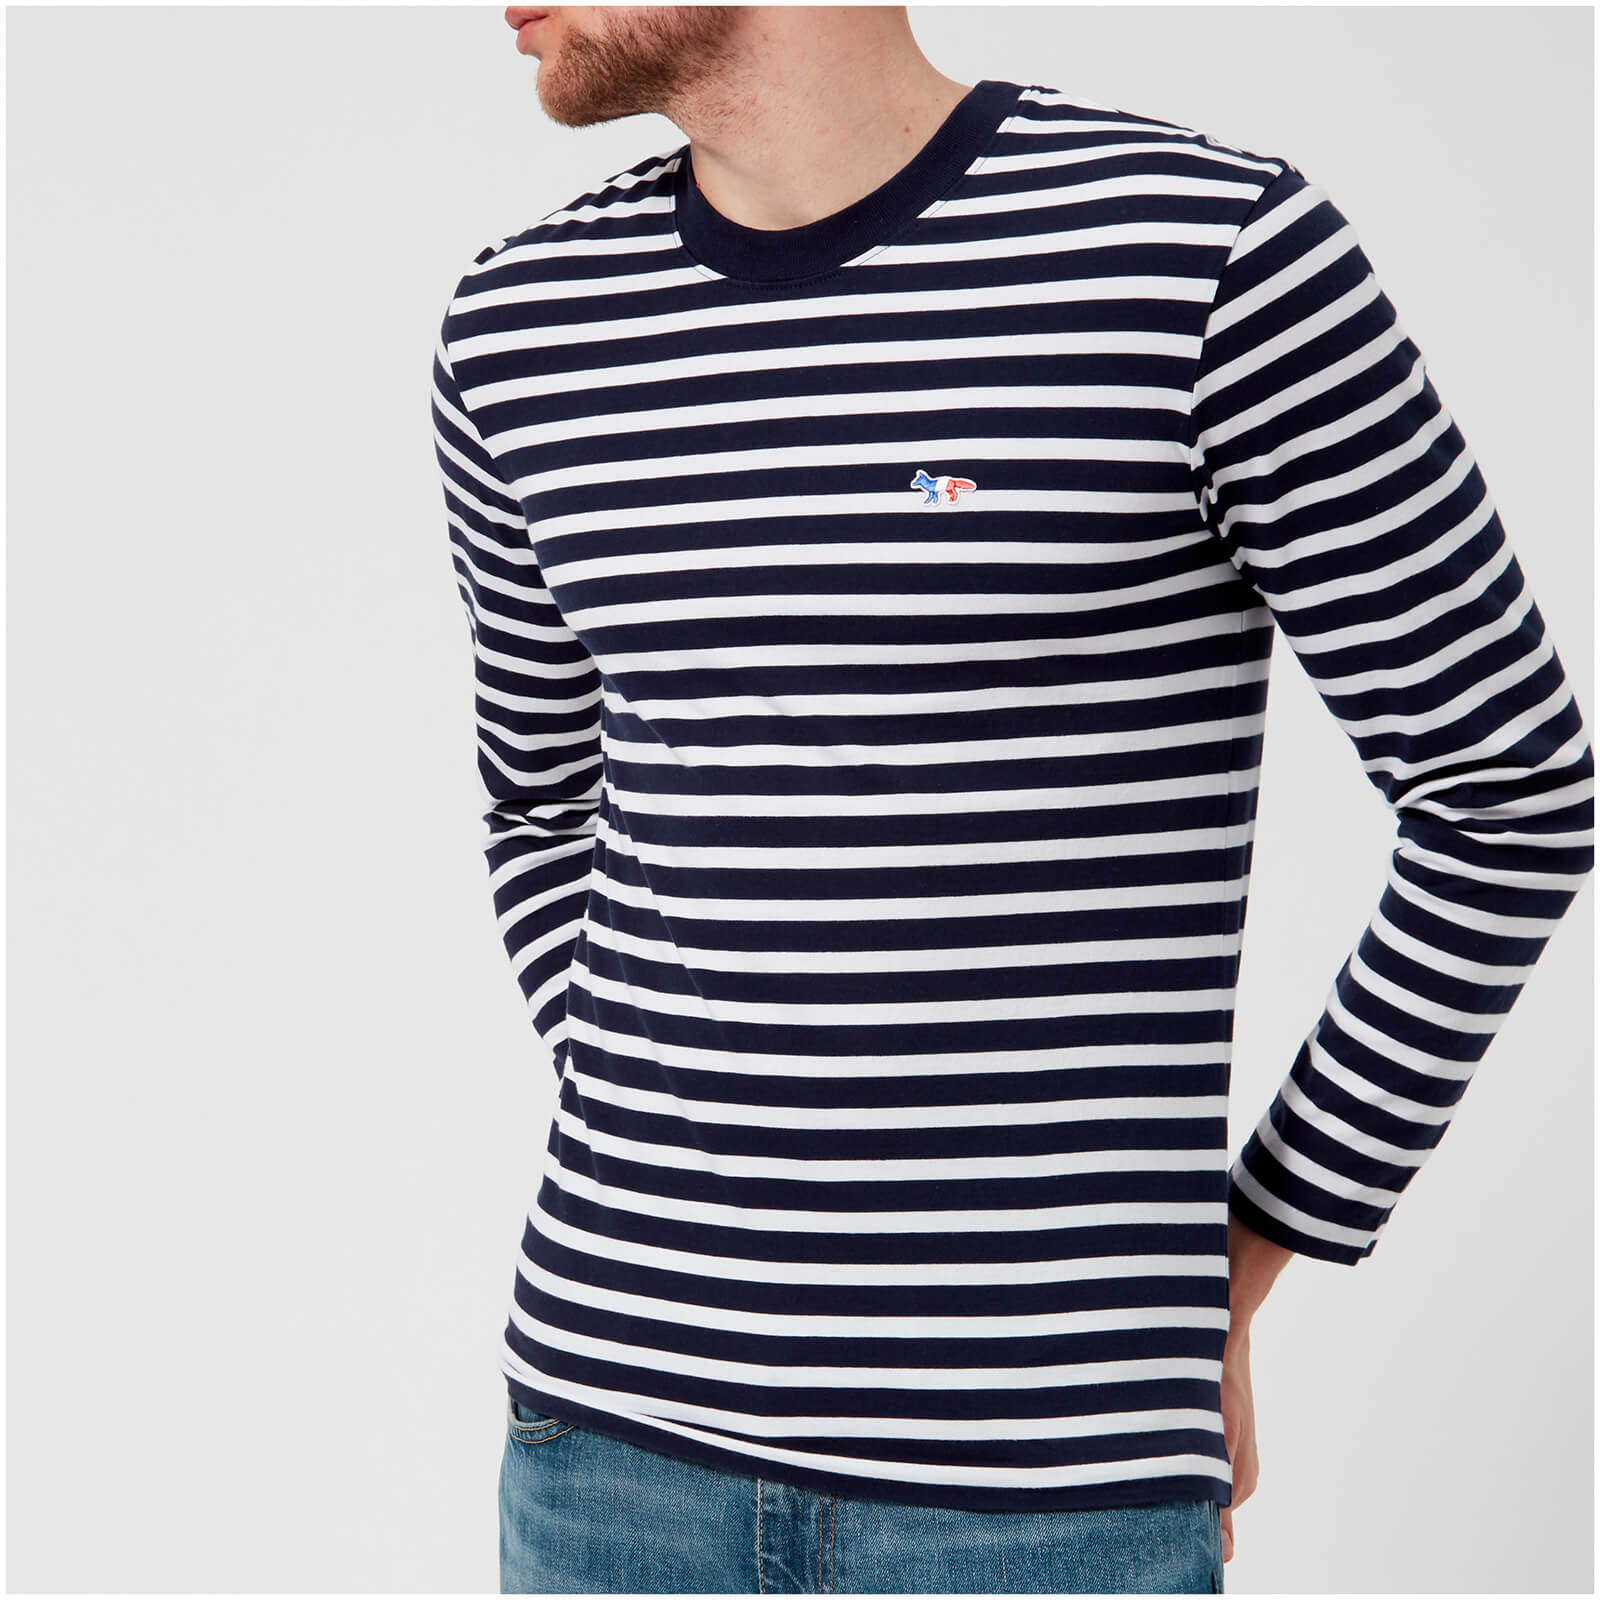 868cbede9c85 Maison Kitsuné Men s Marin Long Sleeve T-Shirt with Tricolor Fox Patch -  Navy White - Free UK Delivery over £50